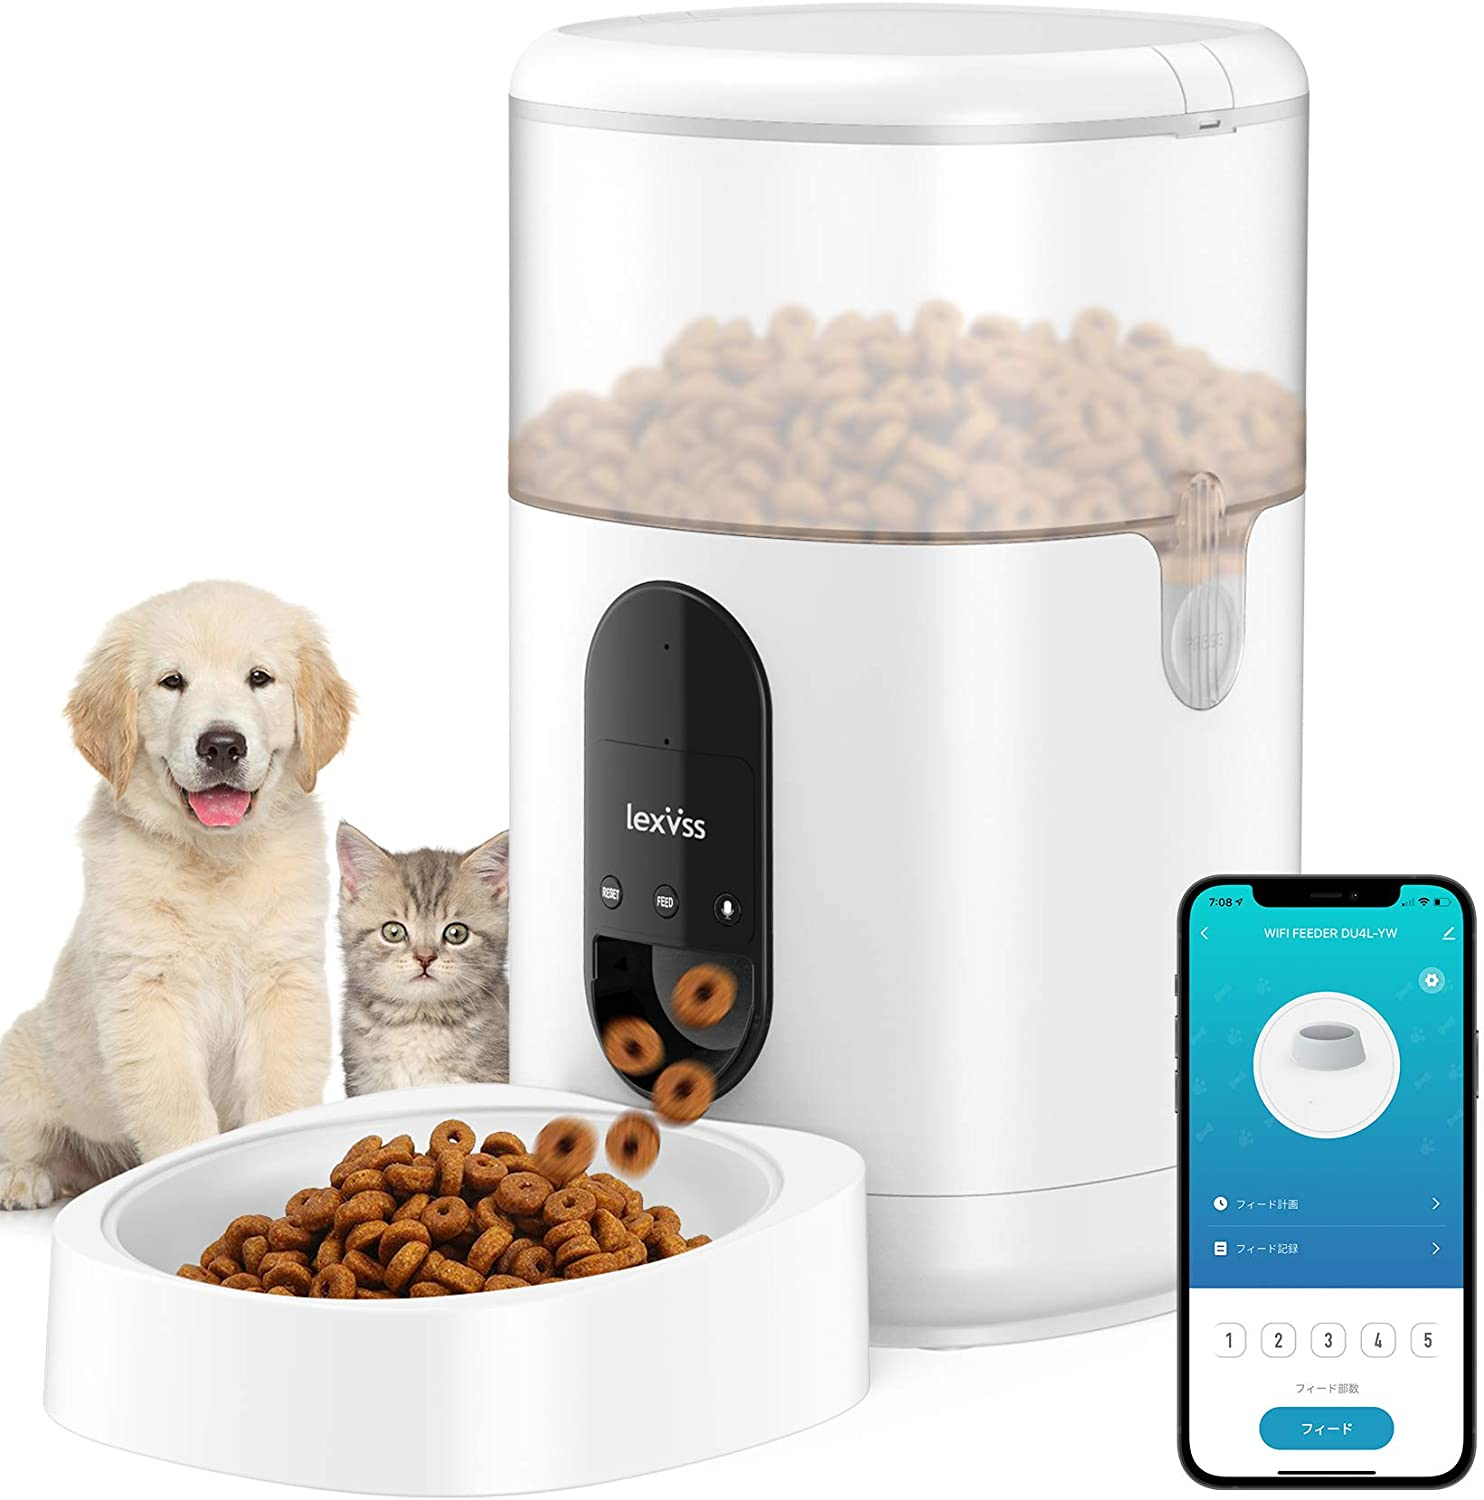 Automatic Cat Feeder, WiFi Dog Food Dispenser with Voice Recording, Programmable Portion Control Up to 8 Meals per Day, Auto Food Feeder with Desiccant for Small & Medium Pets 4L (White)